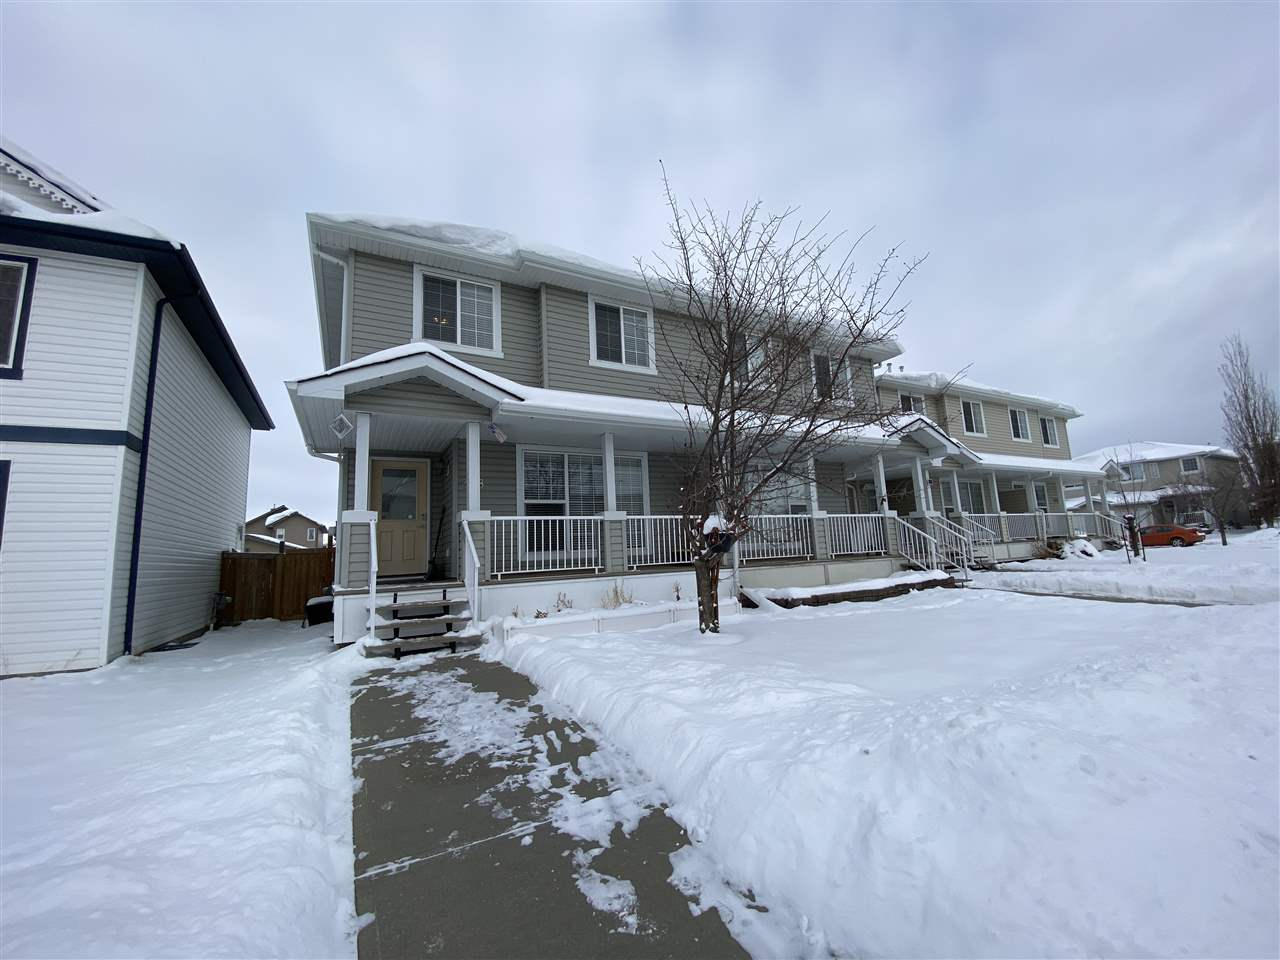 Here it is! Great value in this excellent semi-attached home, with 3 bedrooms upstairs and a great open floor plan on the main. The backyard is spacious, and the garage easily fits 2 full sized cars. Located on a quiet street, close to amenities, and easy access to the Henday and Whitemud. It's walking distance to many great parks and the Meadows Rec Centre. This is a terrific family home or investment property, well worth your time.